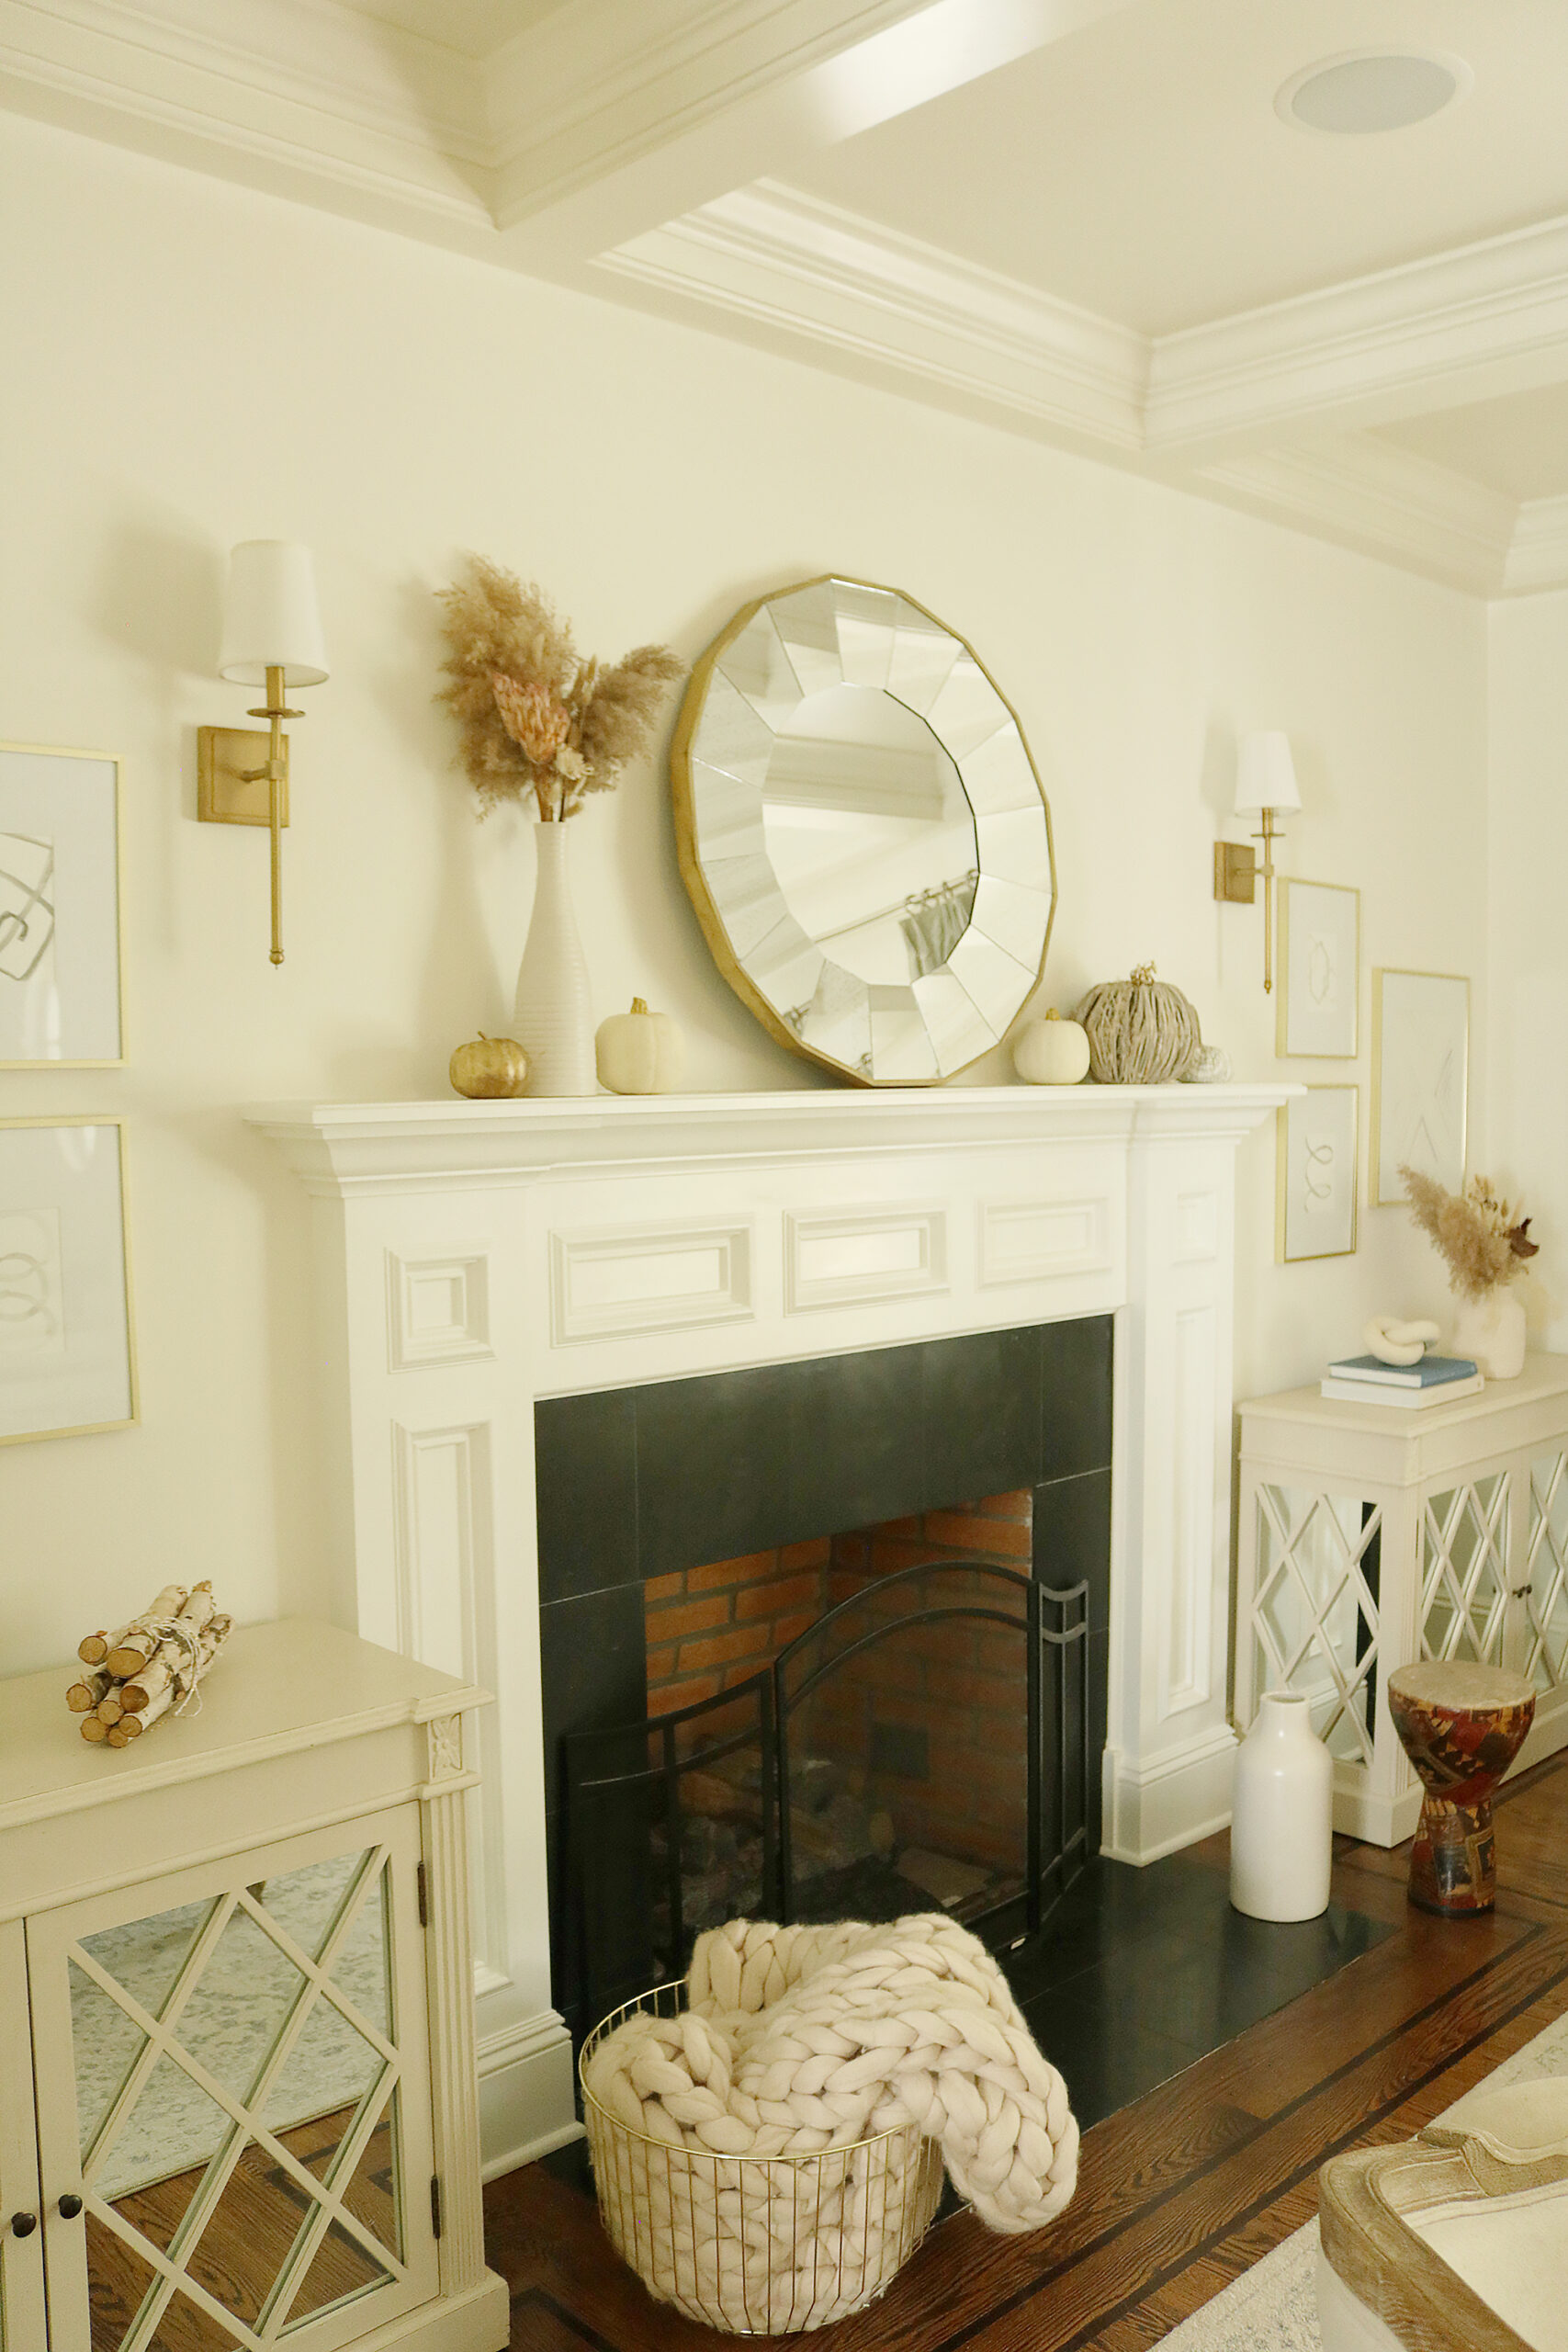 Easy Fall decorations that are simple and minimal but brings that home comfort and cozy look.  Simple Fall mantle decorations || Darling Darleen Top CT Lifestyle Blogger #falldecor #falldecorations #ctlifestyleblogger #darlingdarleen